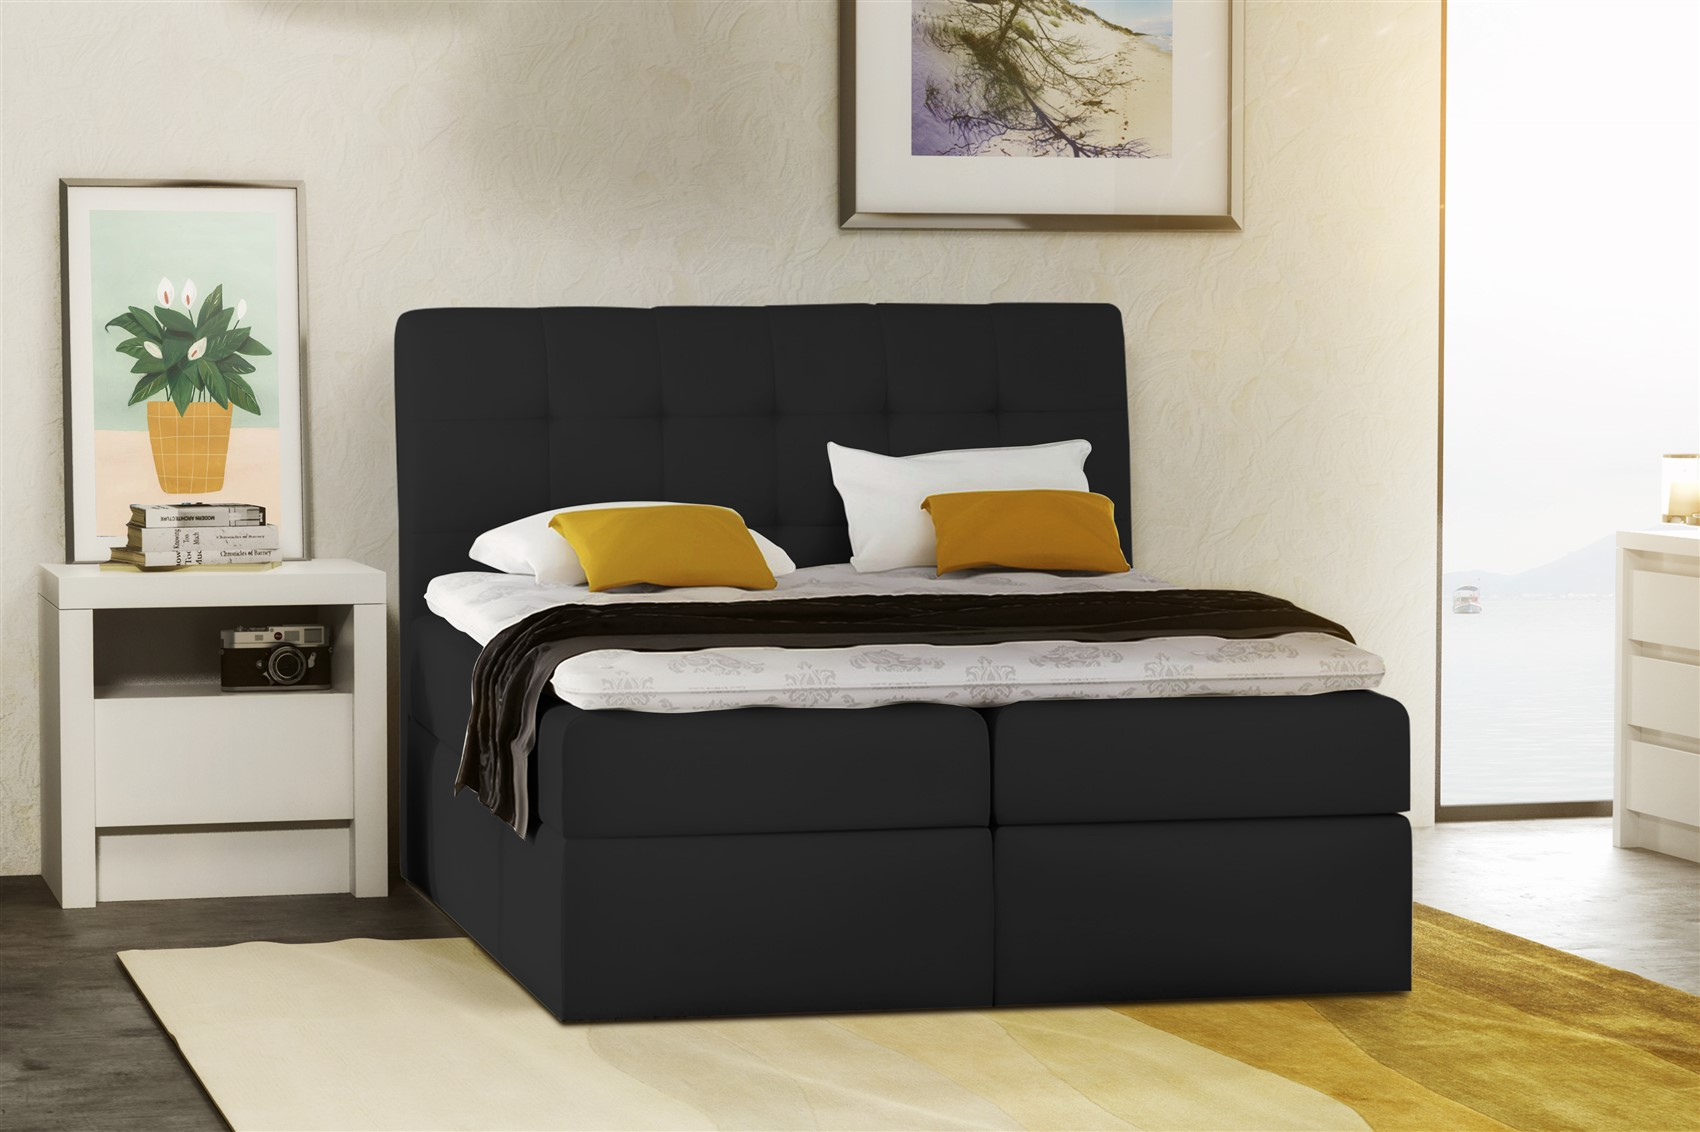 boxspringbett schlafzimmerbett turin kunstleder schwarz 140x200 cm fun m bel. Black Bedroom Furniture Sets. Home Design Ideas